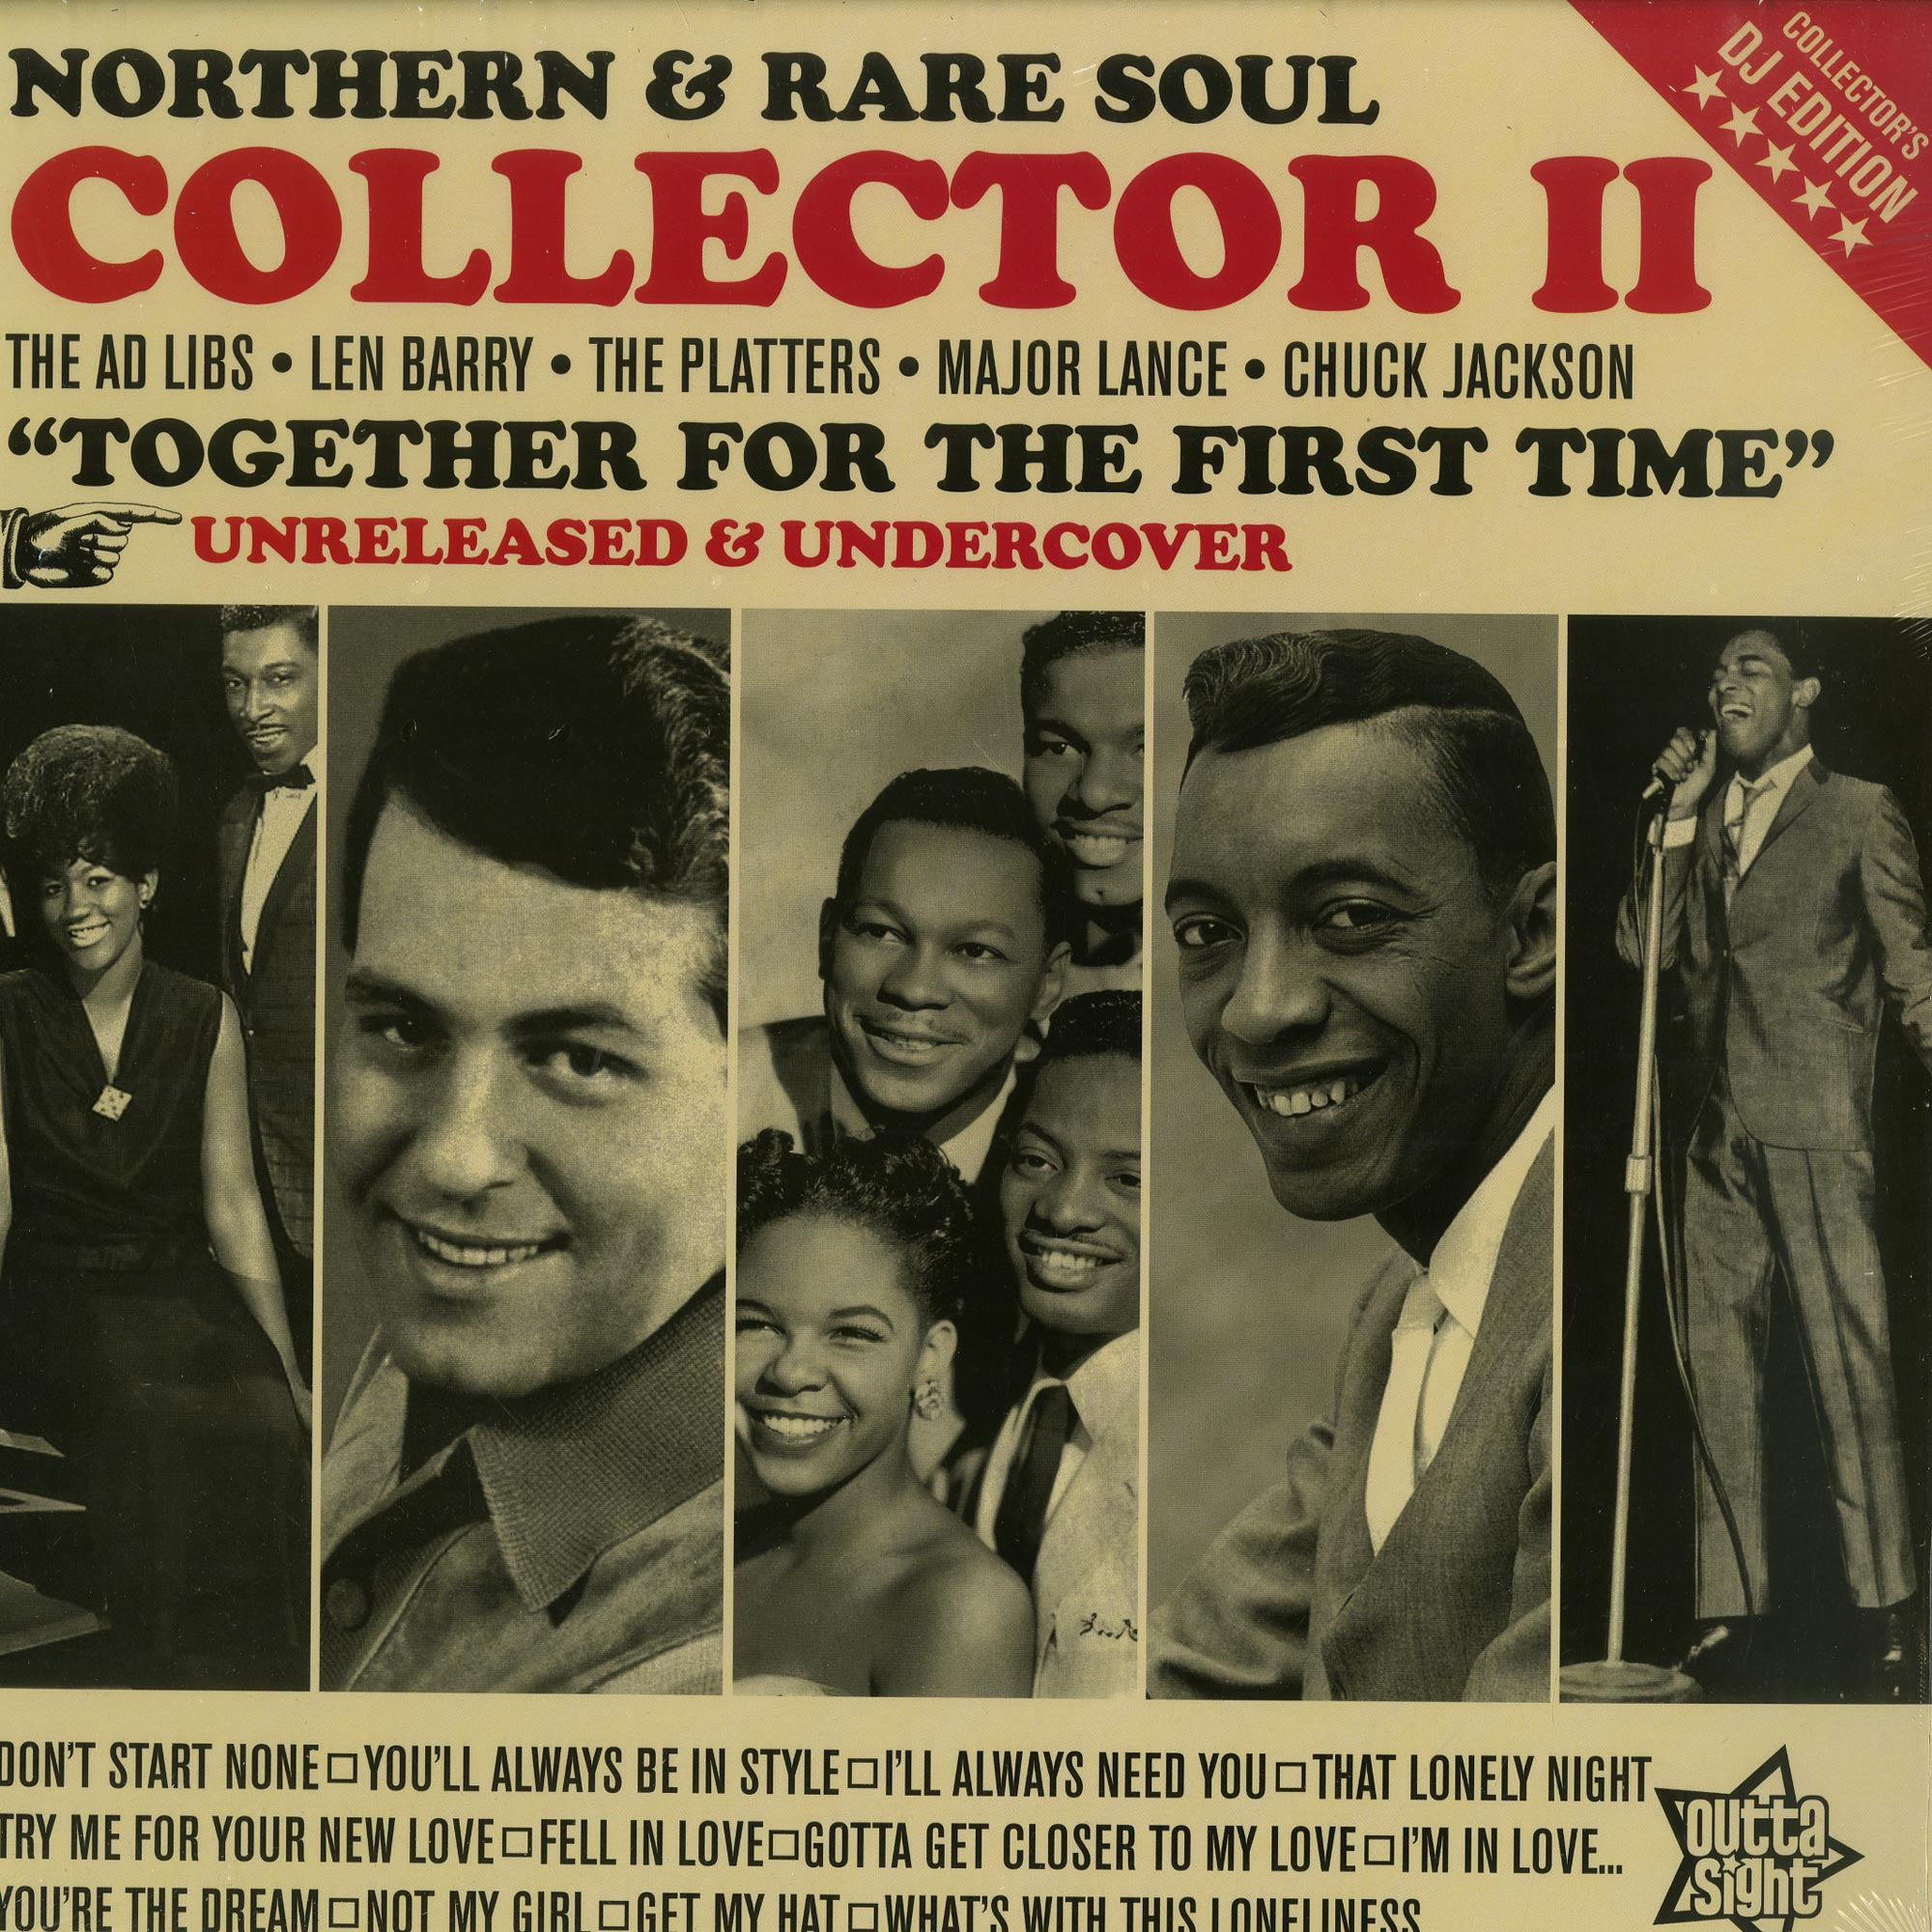 Various Artists - NORTHERN & RARE SOUL: COLLECTOR II